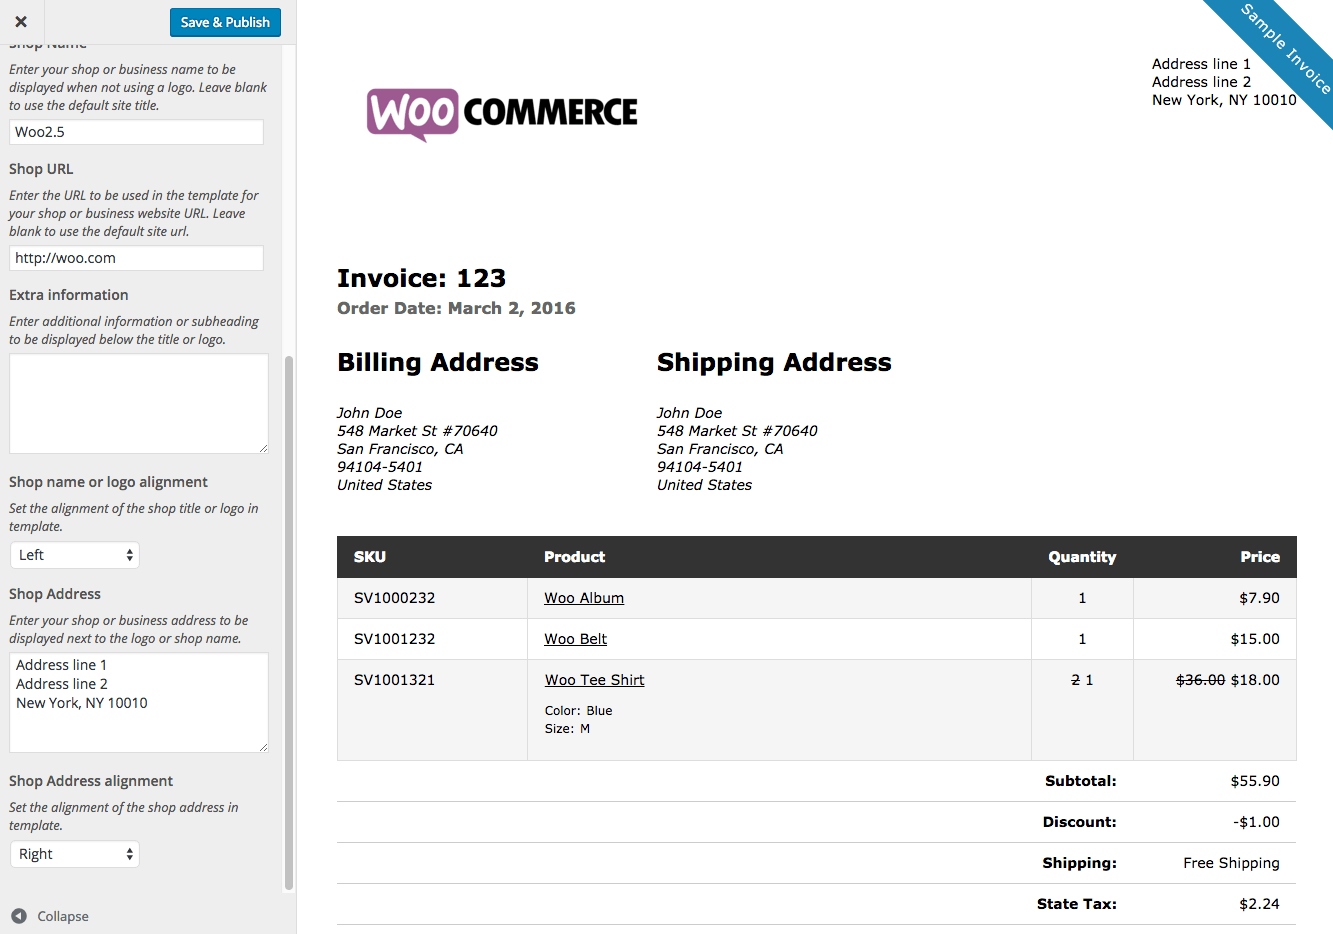 Maidofhonortoastus  Outstanding Woocommerce Print Invoices Amp Packing Lists  Woocommerce Docs With Remarkable Woocommerce Print Invoices  Packing Lists Customizer With Alluring Receipt Printers Also Harbor Freight Return Policy No Receipt In Addition Receipt Scanner Organizer And Can You Return Things To Walmart Without A Receipt As Well As Jcpenney Return Policy Without Receipt Additionally Gogoair Receipt From Docswoocommercecom With Maidofhonortoastus  Remarkable Woocommerce Print Invoices Amp Packing Lists  Woocommerce Docs With Alluring Woocommerce Print Invoices  Packing Lists Customizer And Outstanding Receipt Printers Also Harbor Freight Return Policy No Receipt In Addition Receipt Scanner Organizer From Docswoocommercecom